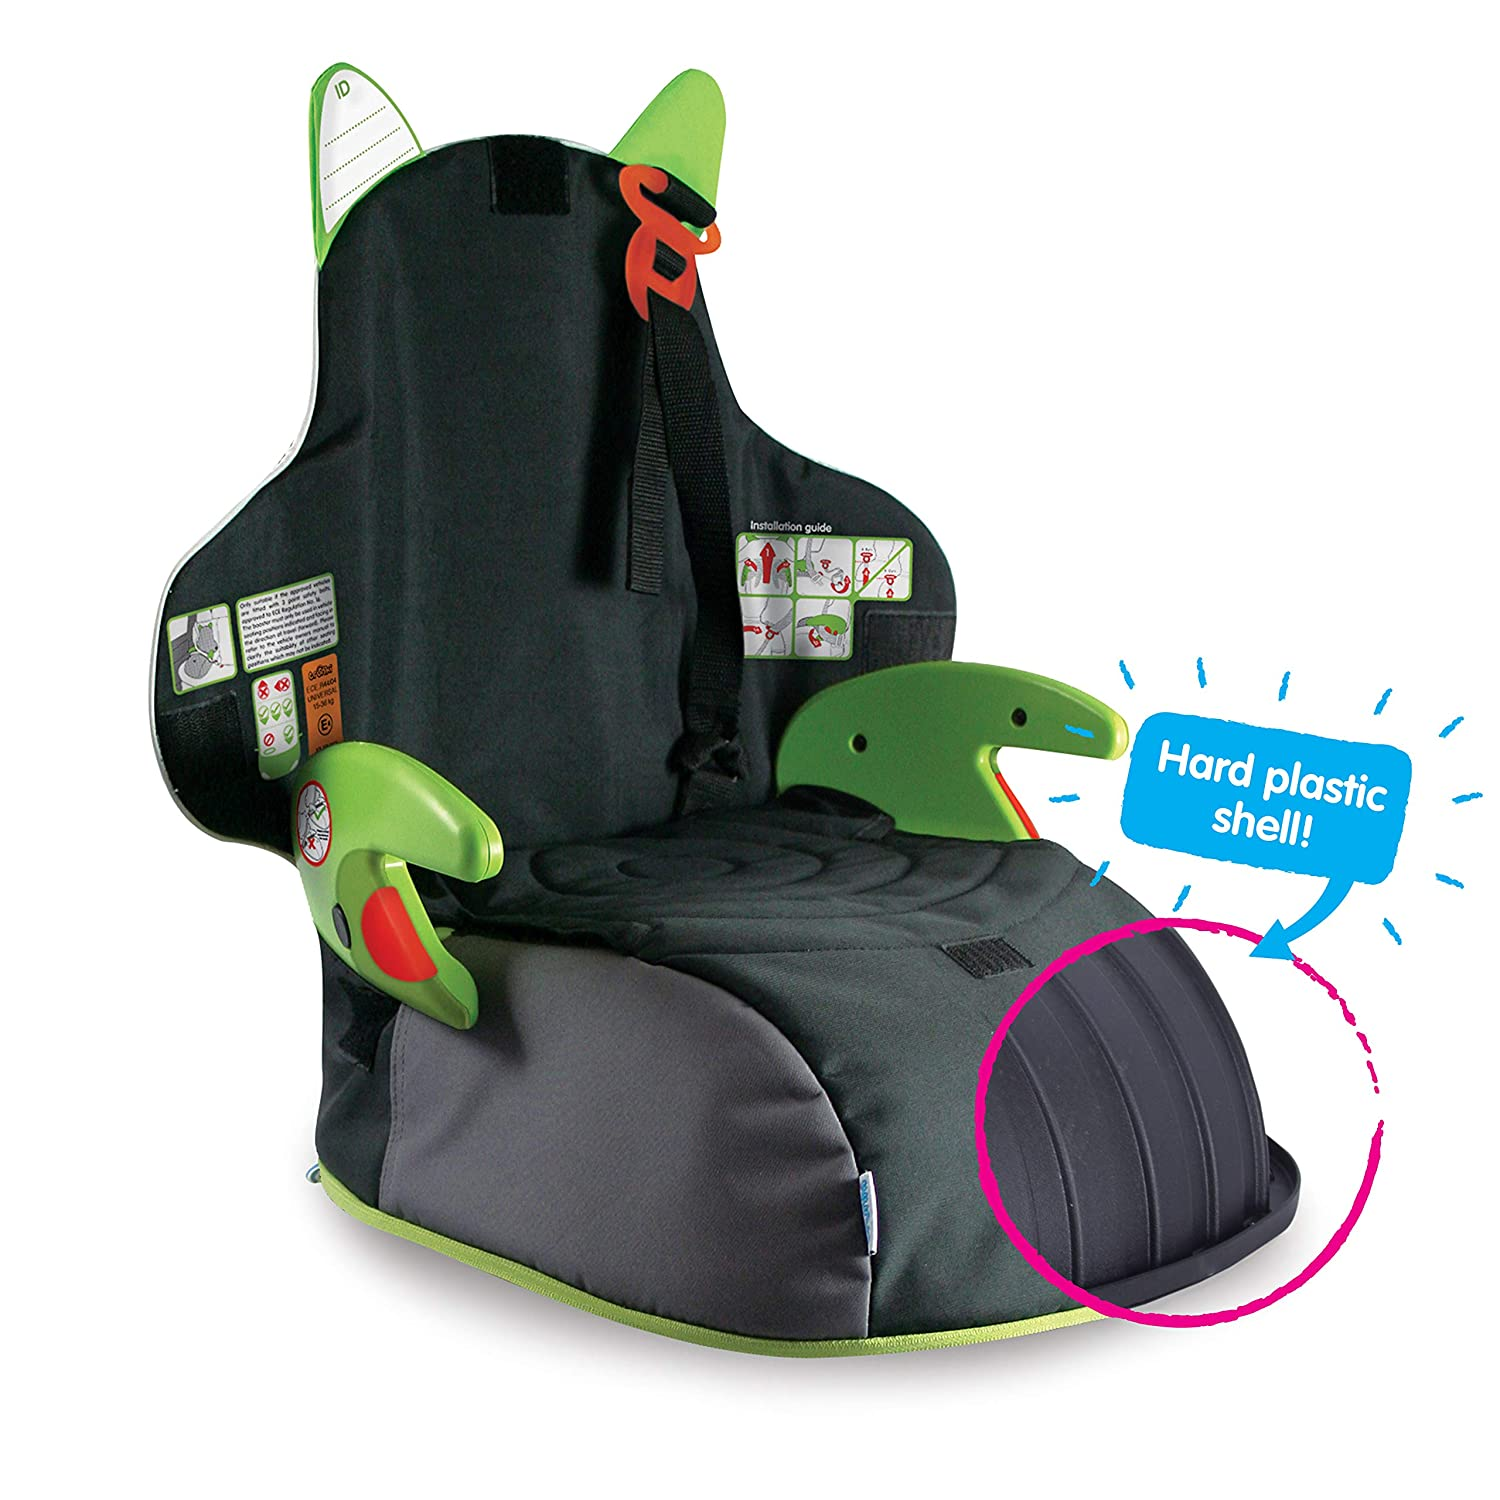 0fef94e3c36 Trunki BoostApak - Travel Backpack   Child Car Booster Seat for Group 2-3  (Green)  Amazon.co.uk  Luggage